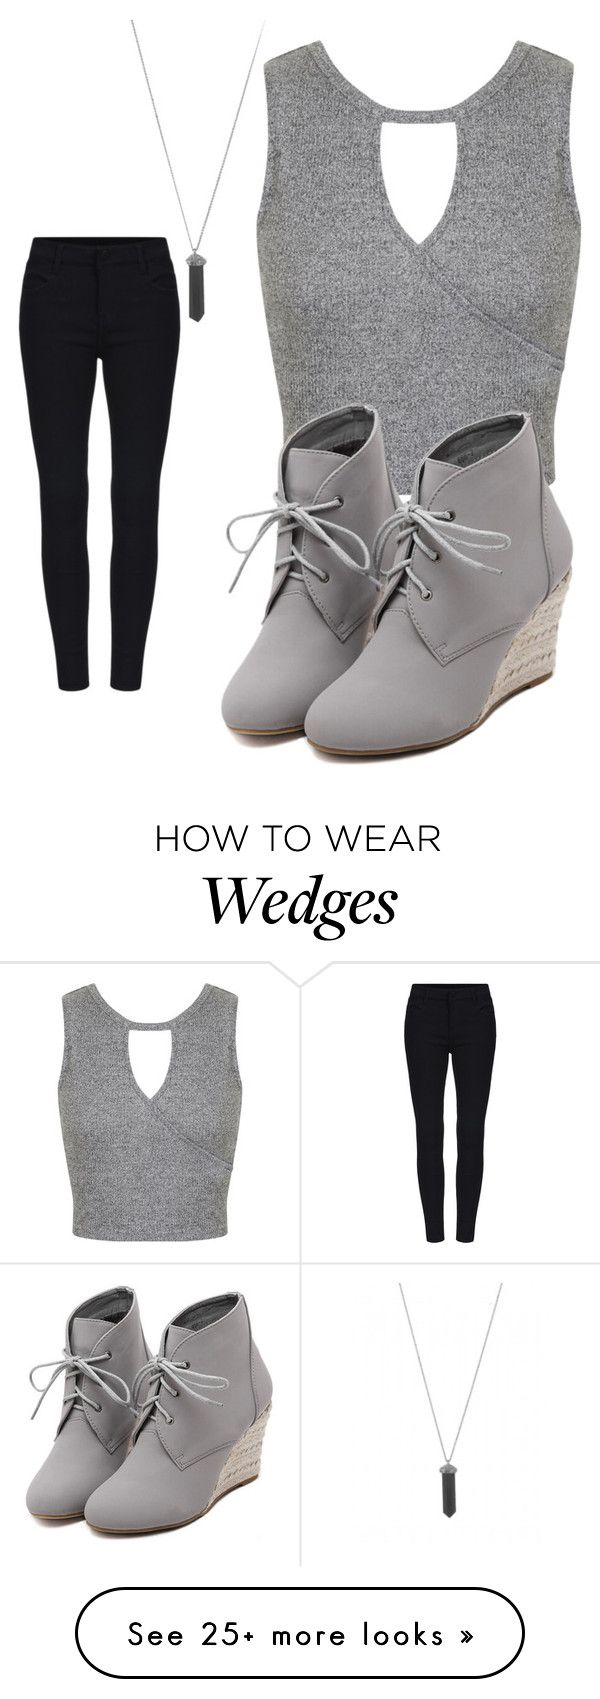 """Untitled #579"" by jaimie-lynn-1 on Polyvore featuring Miss Selfridge, WithChic, Karen Kane, women's clothing, women, female, woman, misses and juniors"